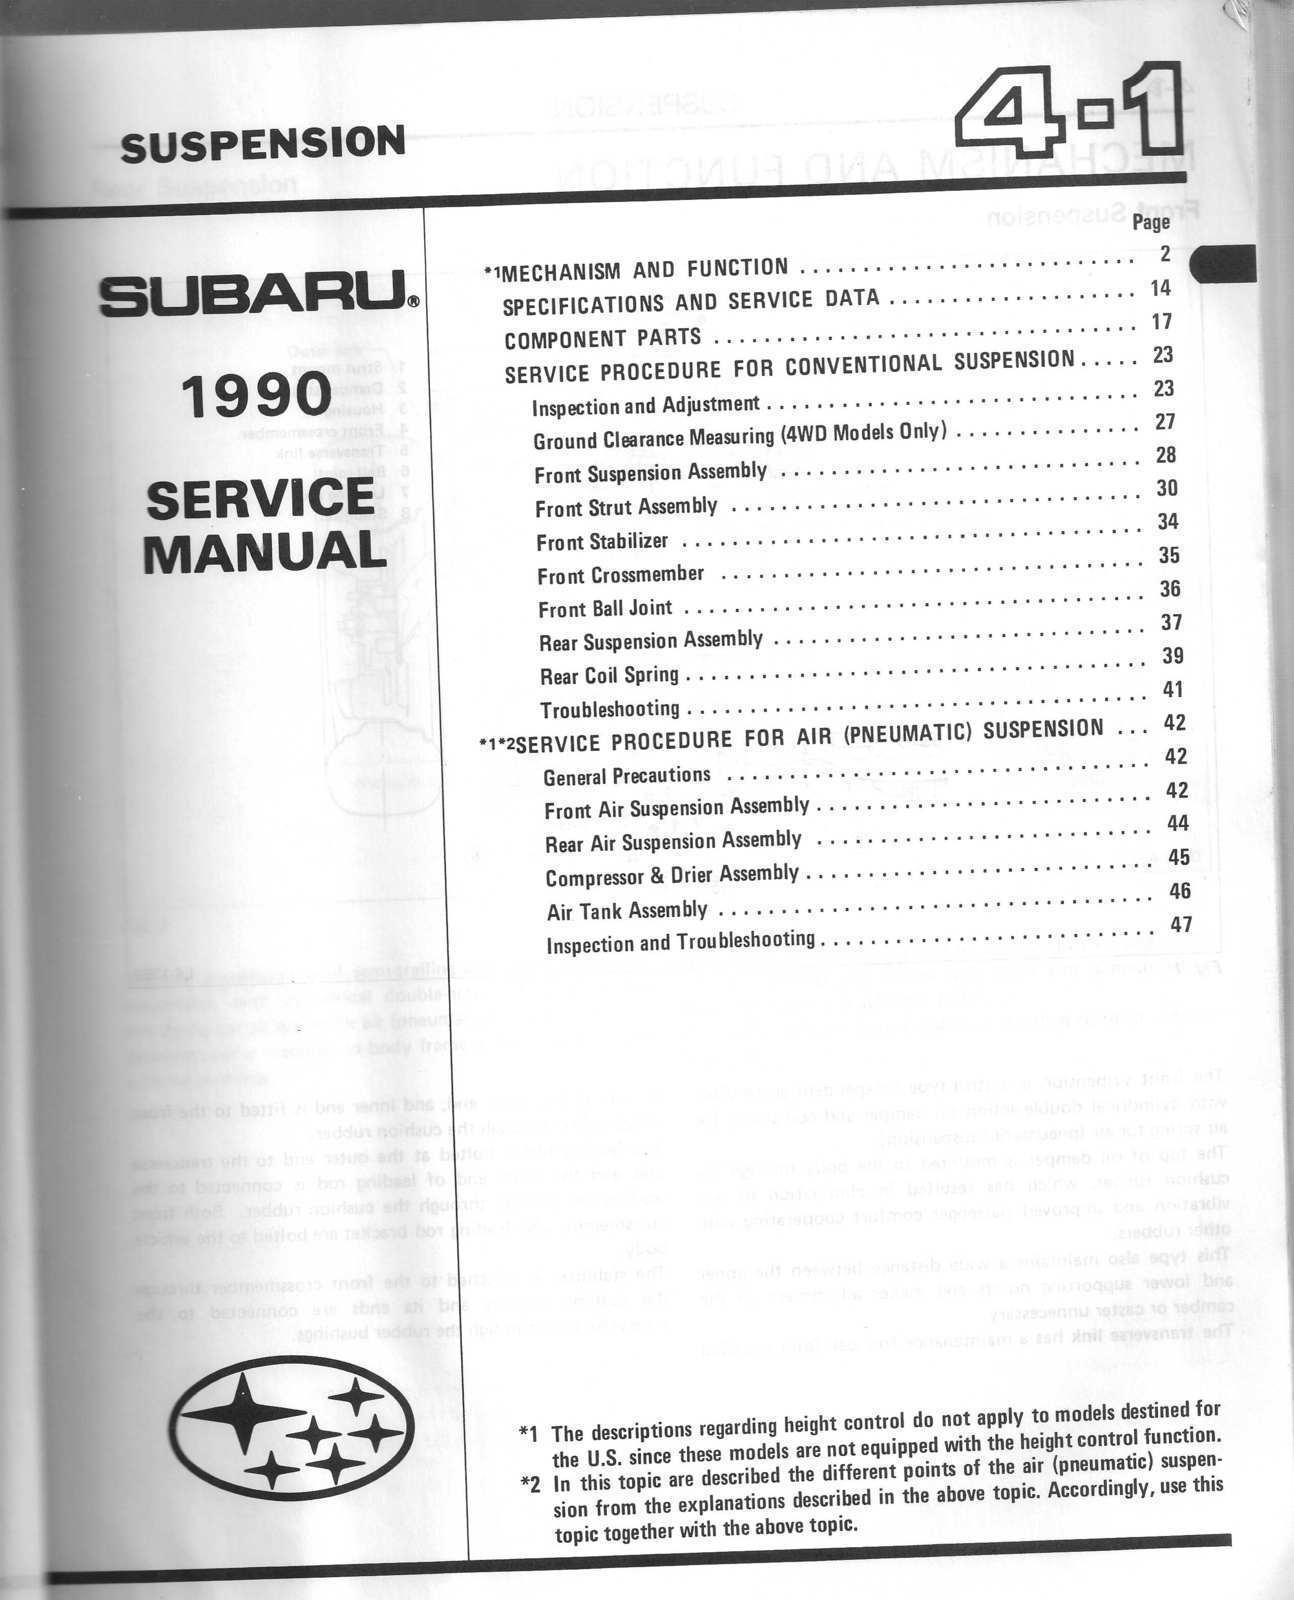 1990 Subaru Service Manual XT6 OEM Factory  Mechanical Components and Body 4 & 5